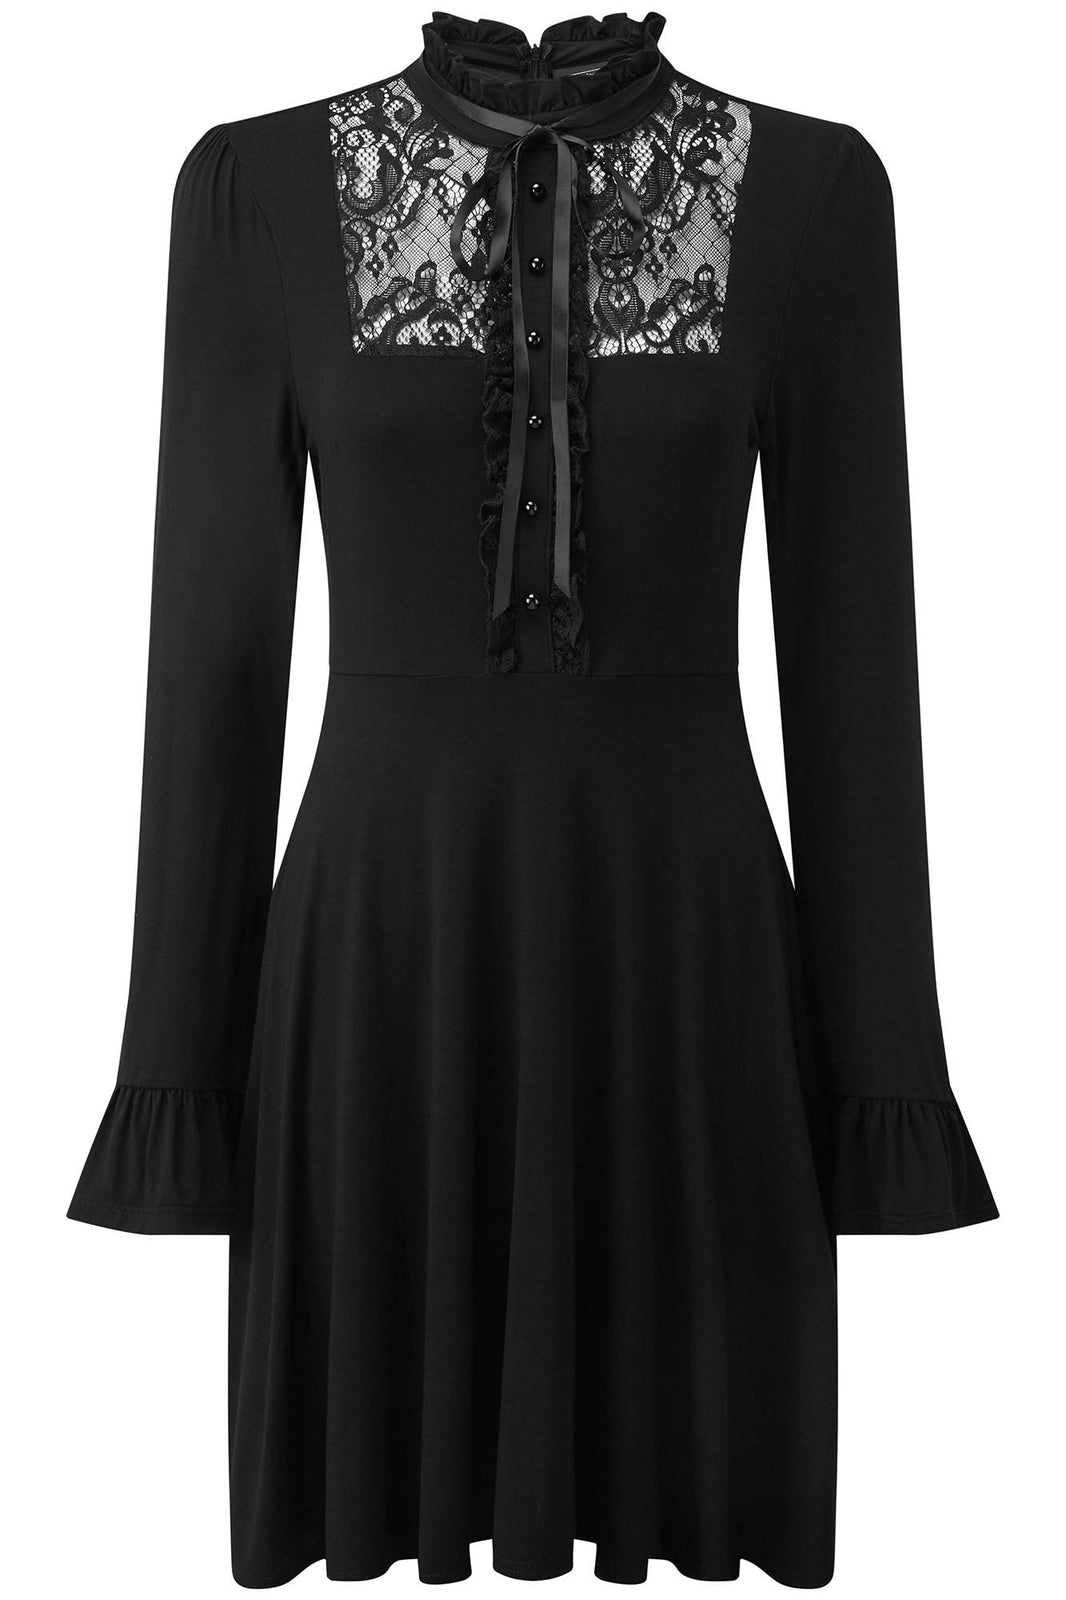 Sabrina Ruffle Dress